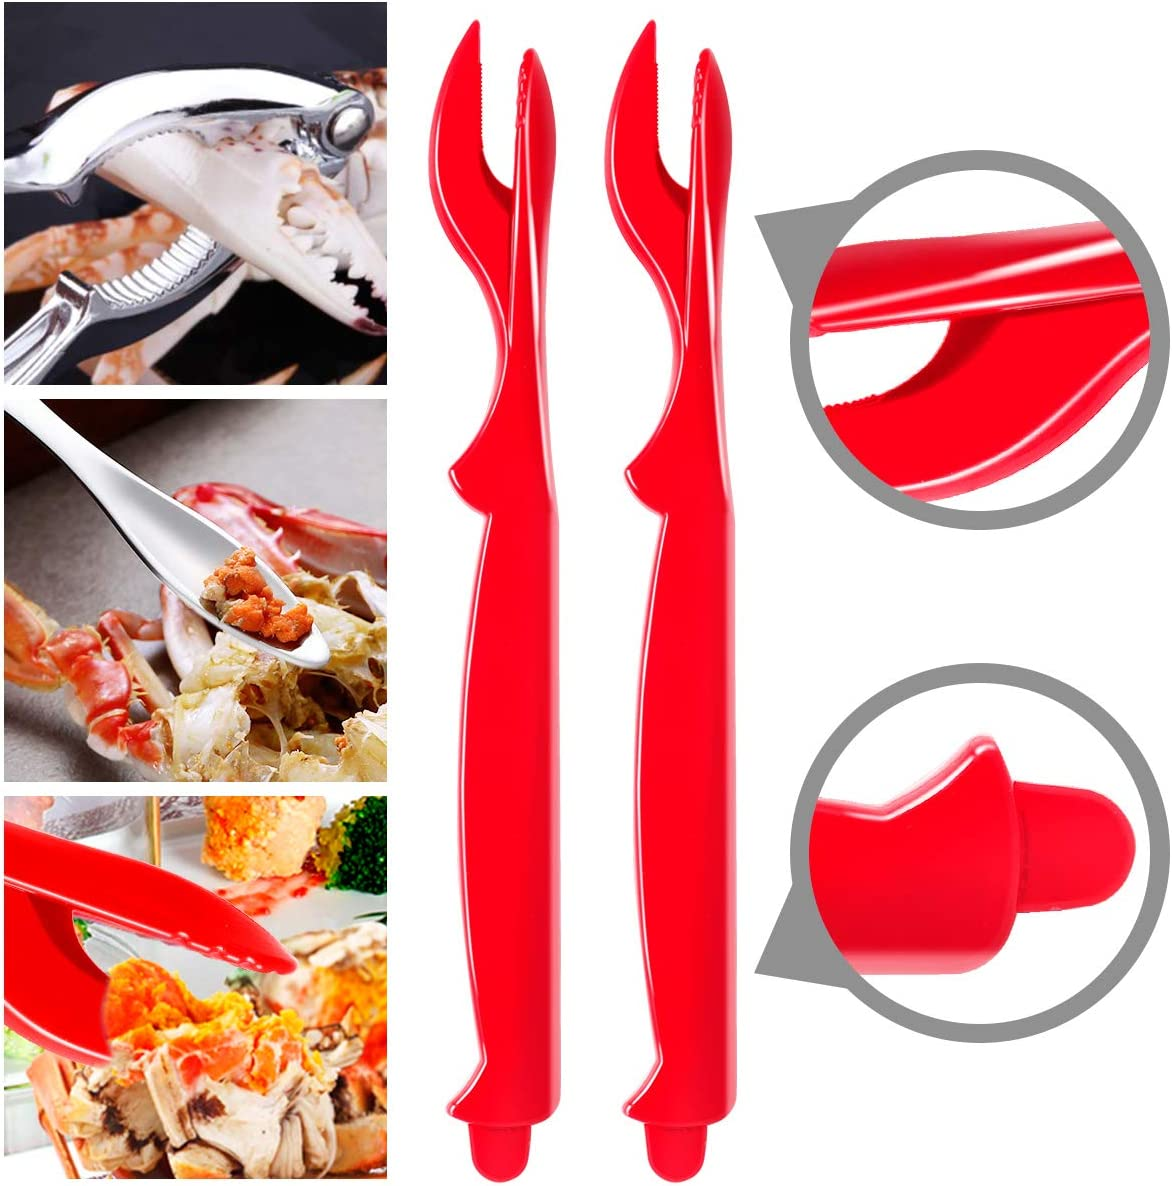 12 Pack Sturdy Crab Crackers and Tools Kit, Dishwasher Safe Seafood Tools Set, Crab Crackers, Lobster Shell Knife, Crab Leg Picks, Crab Bibs Disposable, Stainless Steel Nut Cracker Set, Kitchen Tools: Kitchen & Dining